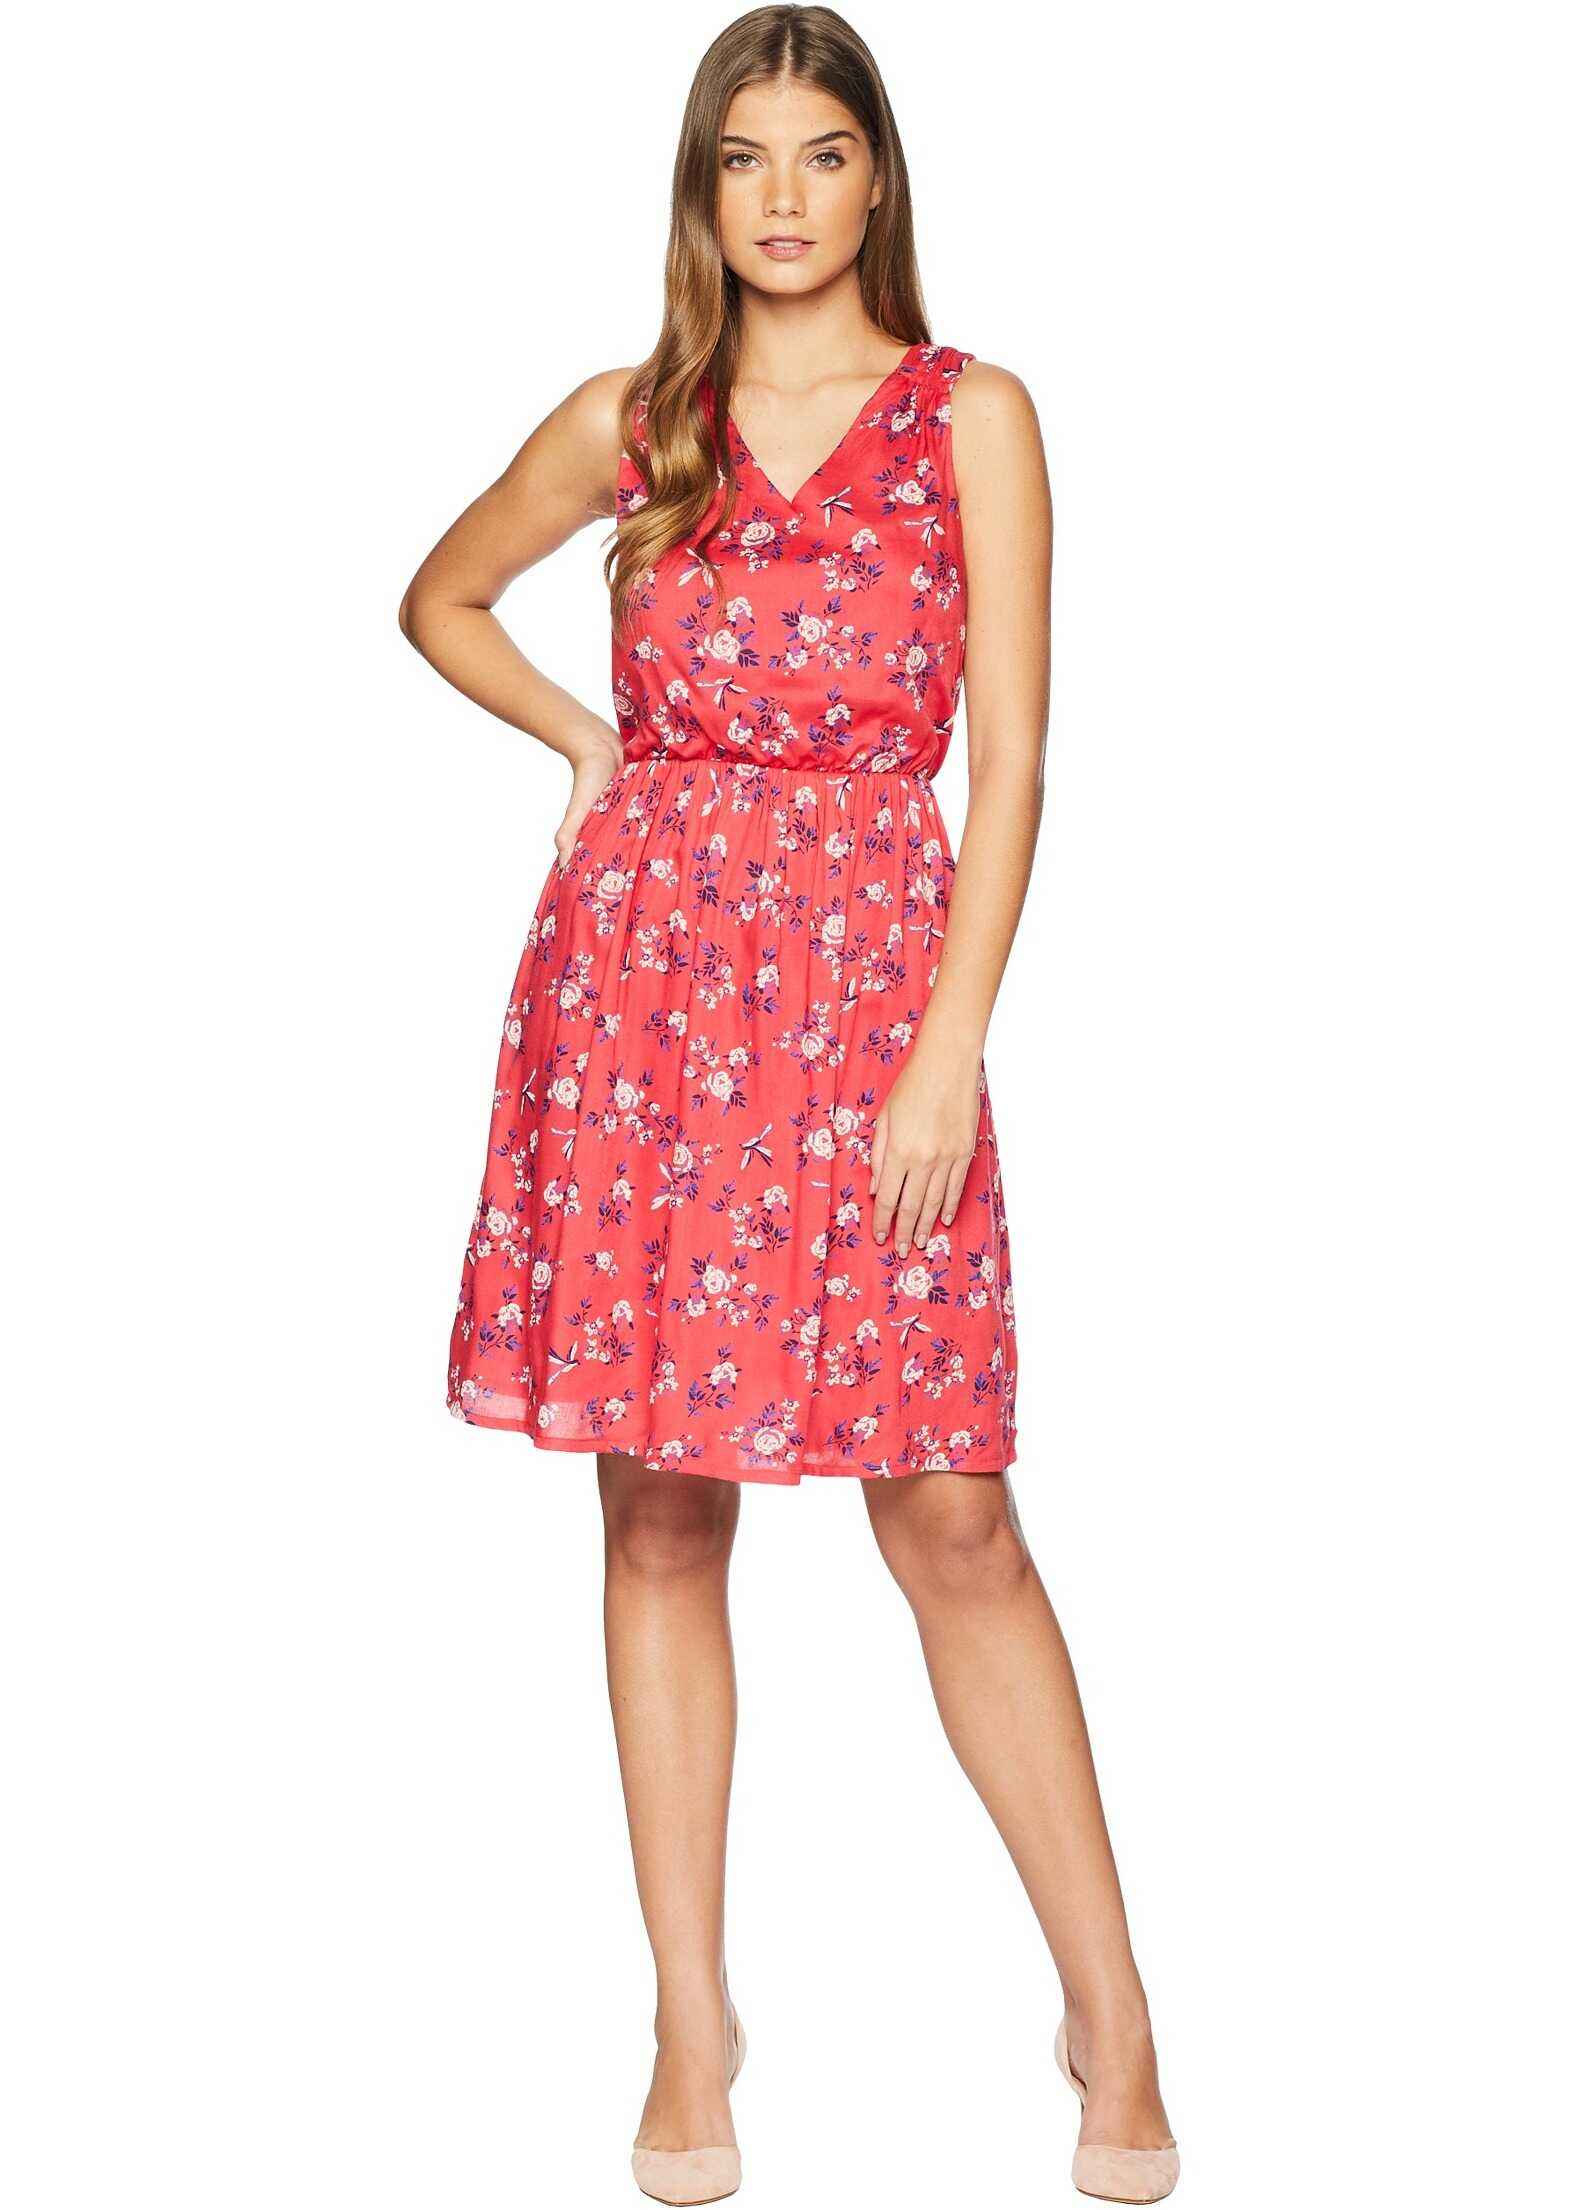 U.S. POLO ASSN. Floral V-Neck Dress Teaberry